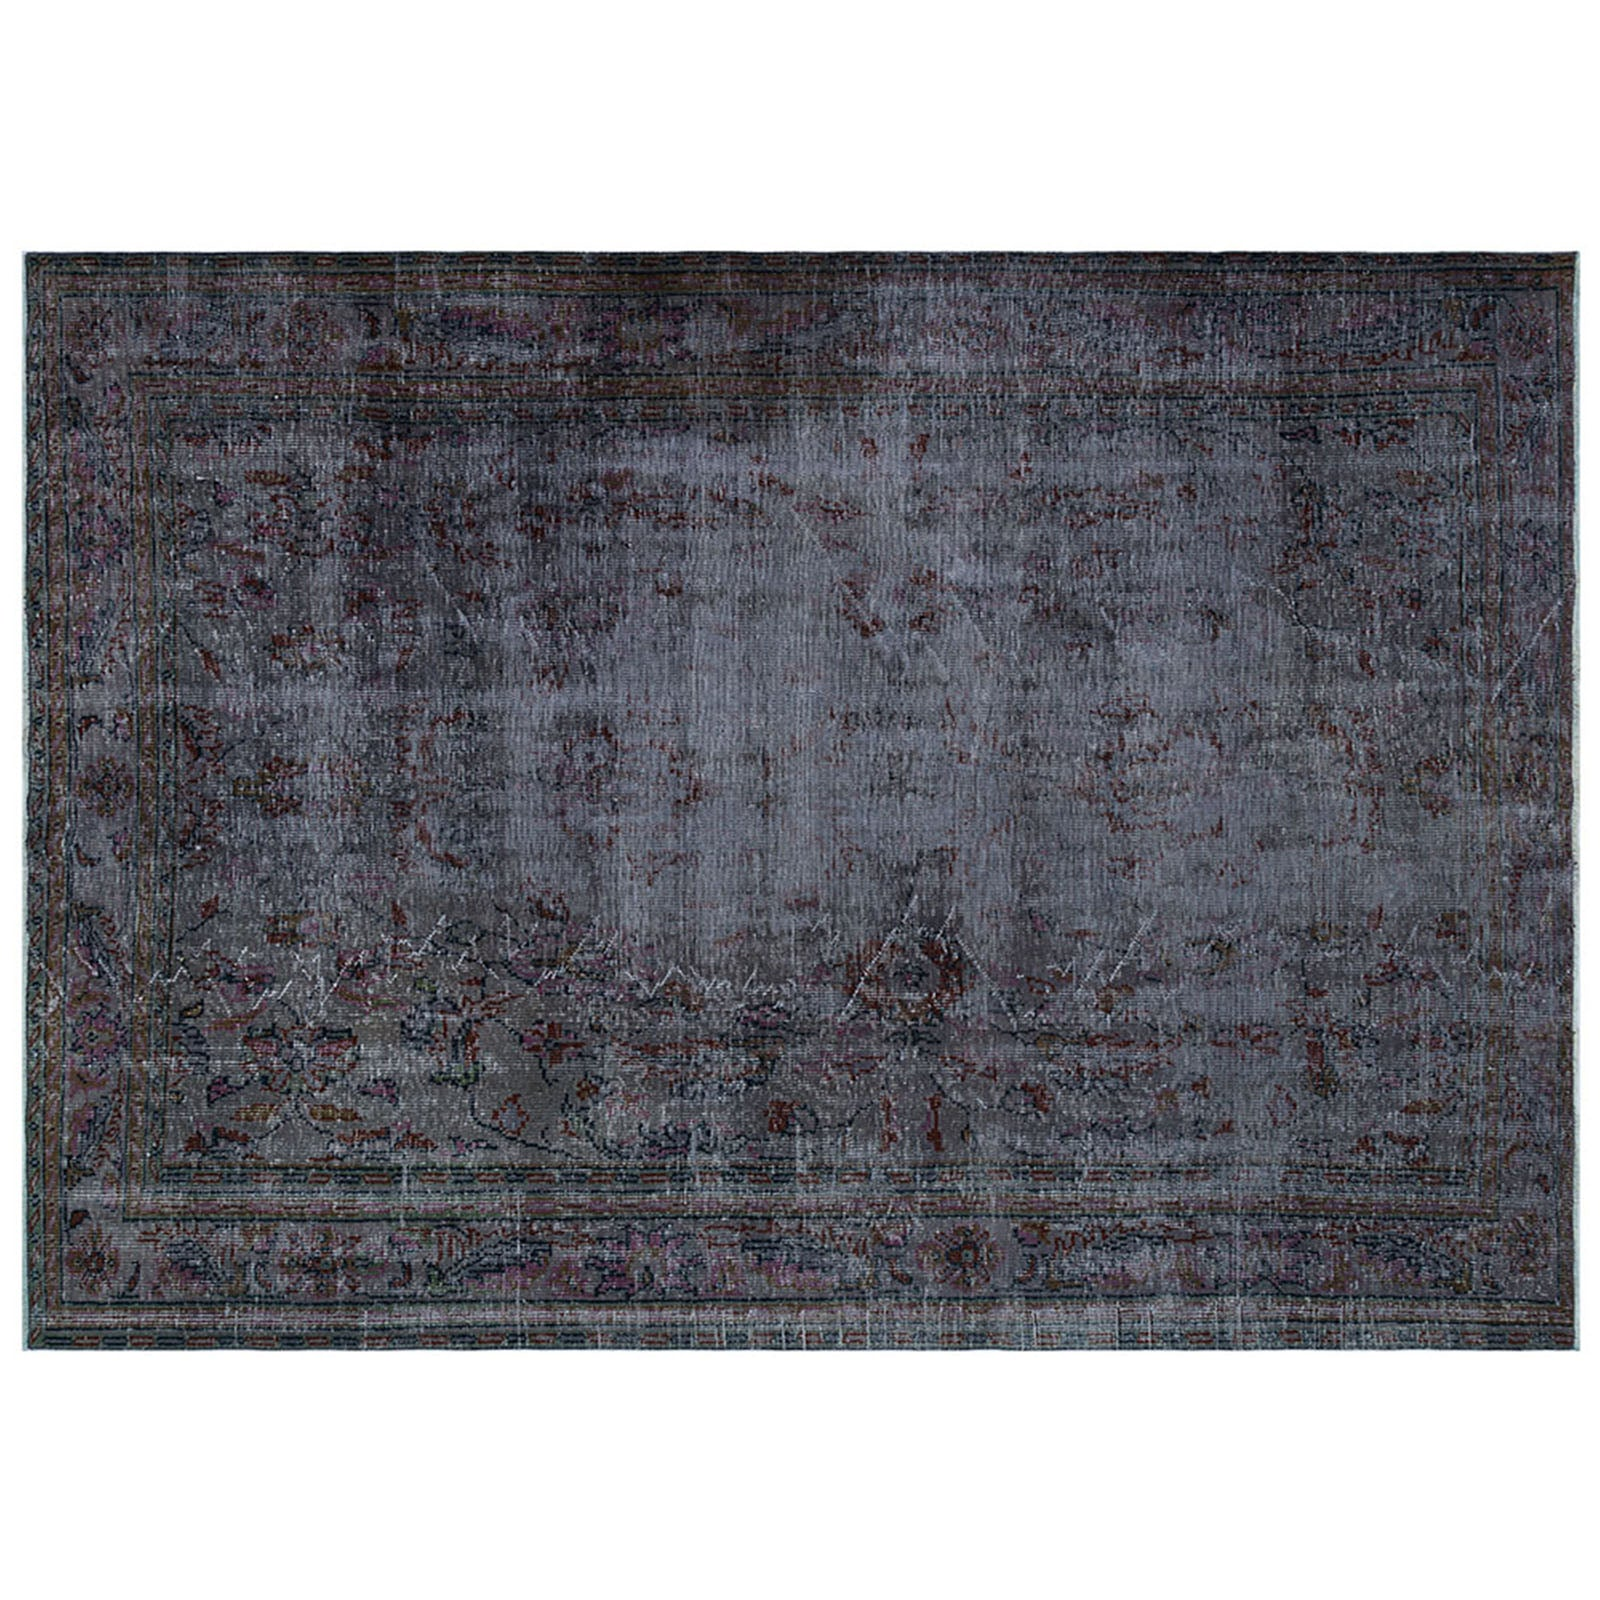 Hali 220X304 CM Bursa Handmade over dyed rug 2140